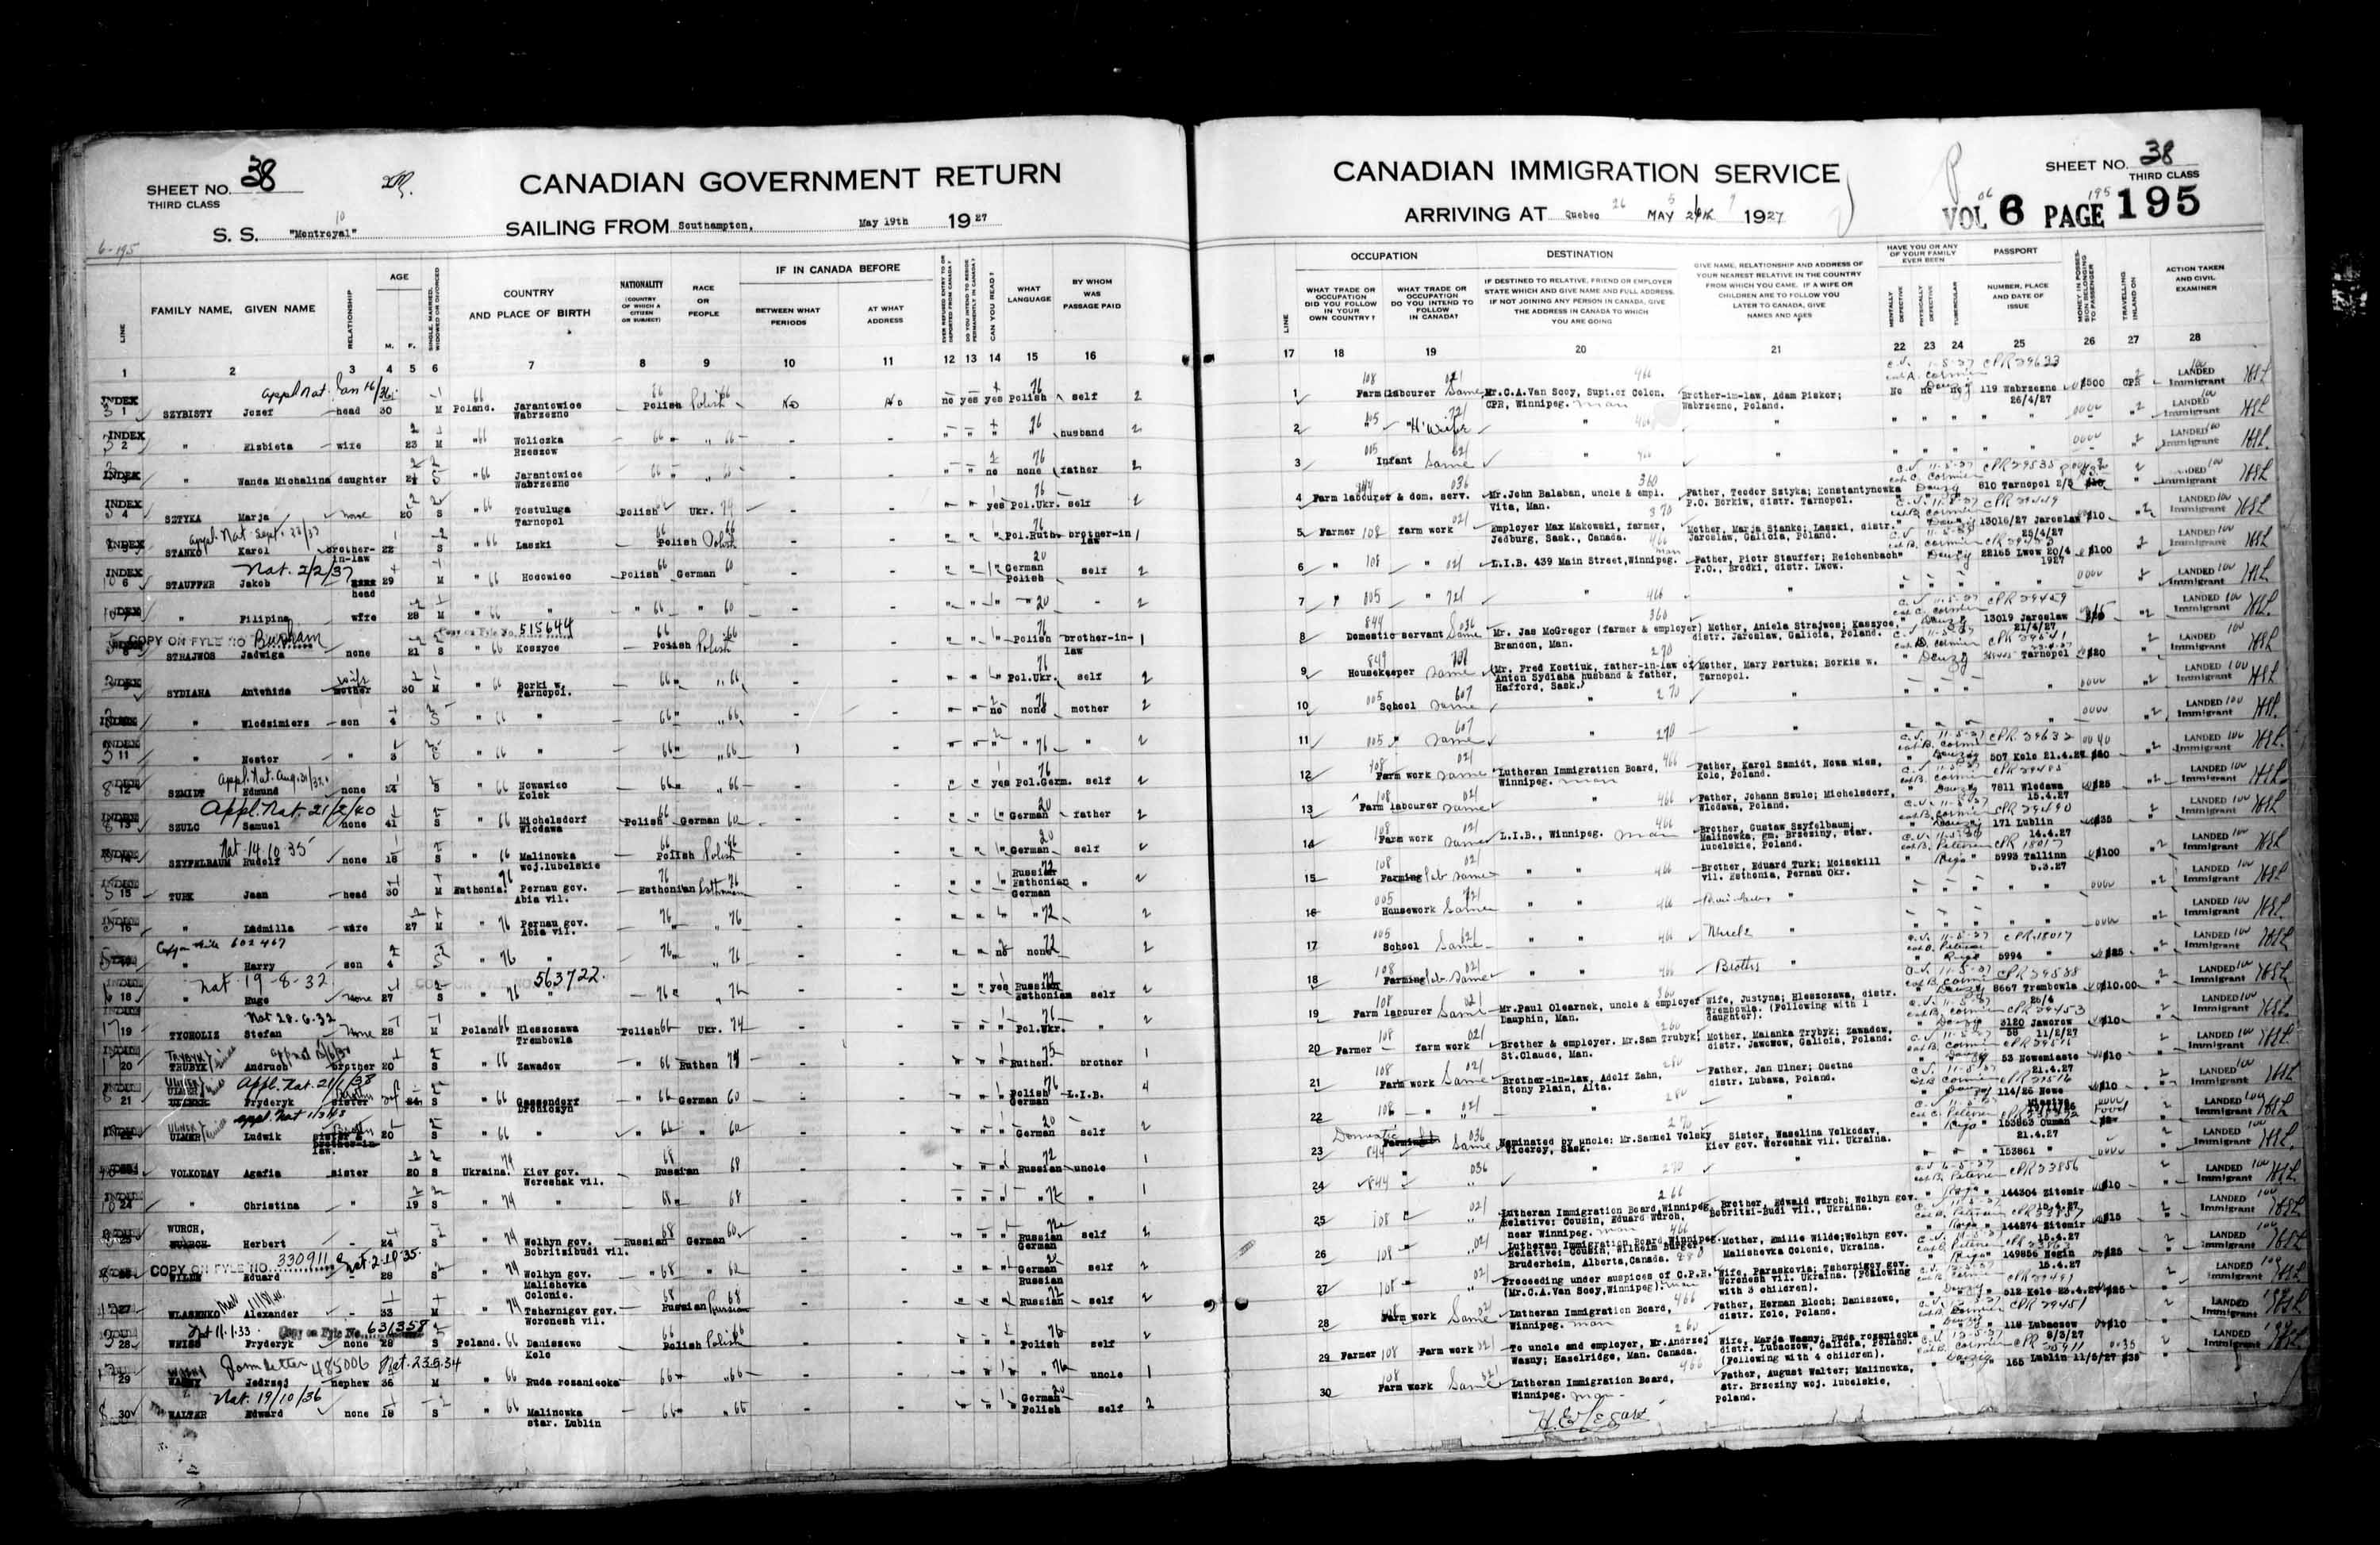 Title: Passenger Lists: Quebec City (1925-1935) - Mikan Number: 134839 - Microform: t-14733